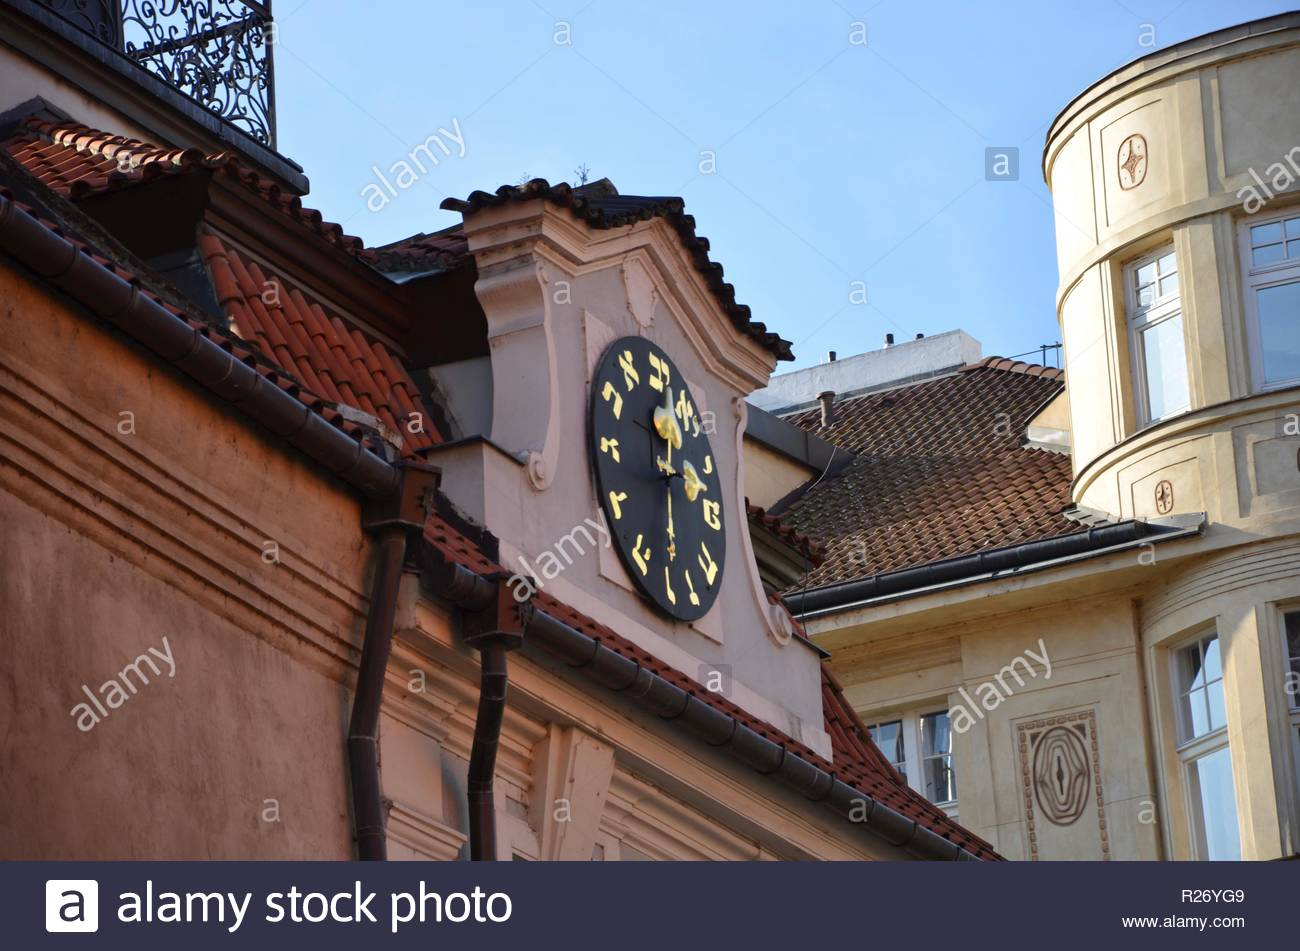 Clock with Hebrew numbers on a synagogue in Prague, closeup, Jewish district, architecture, - Stock Image